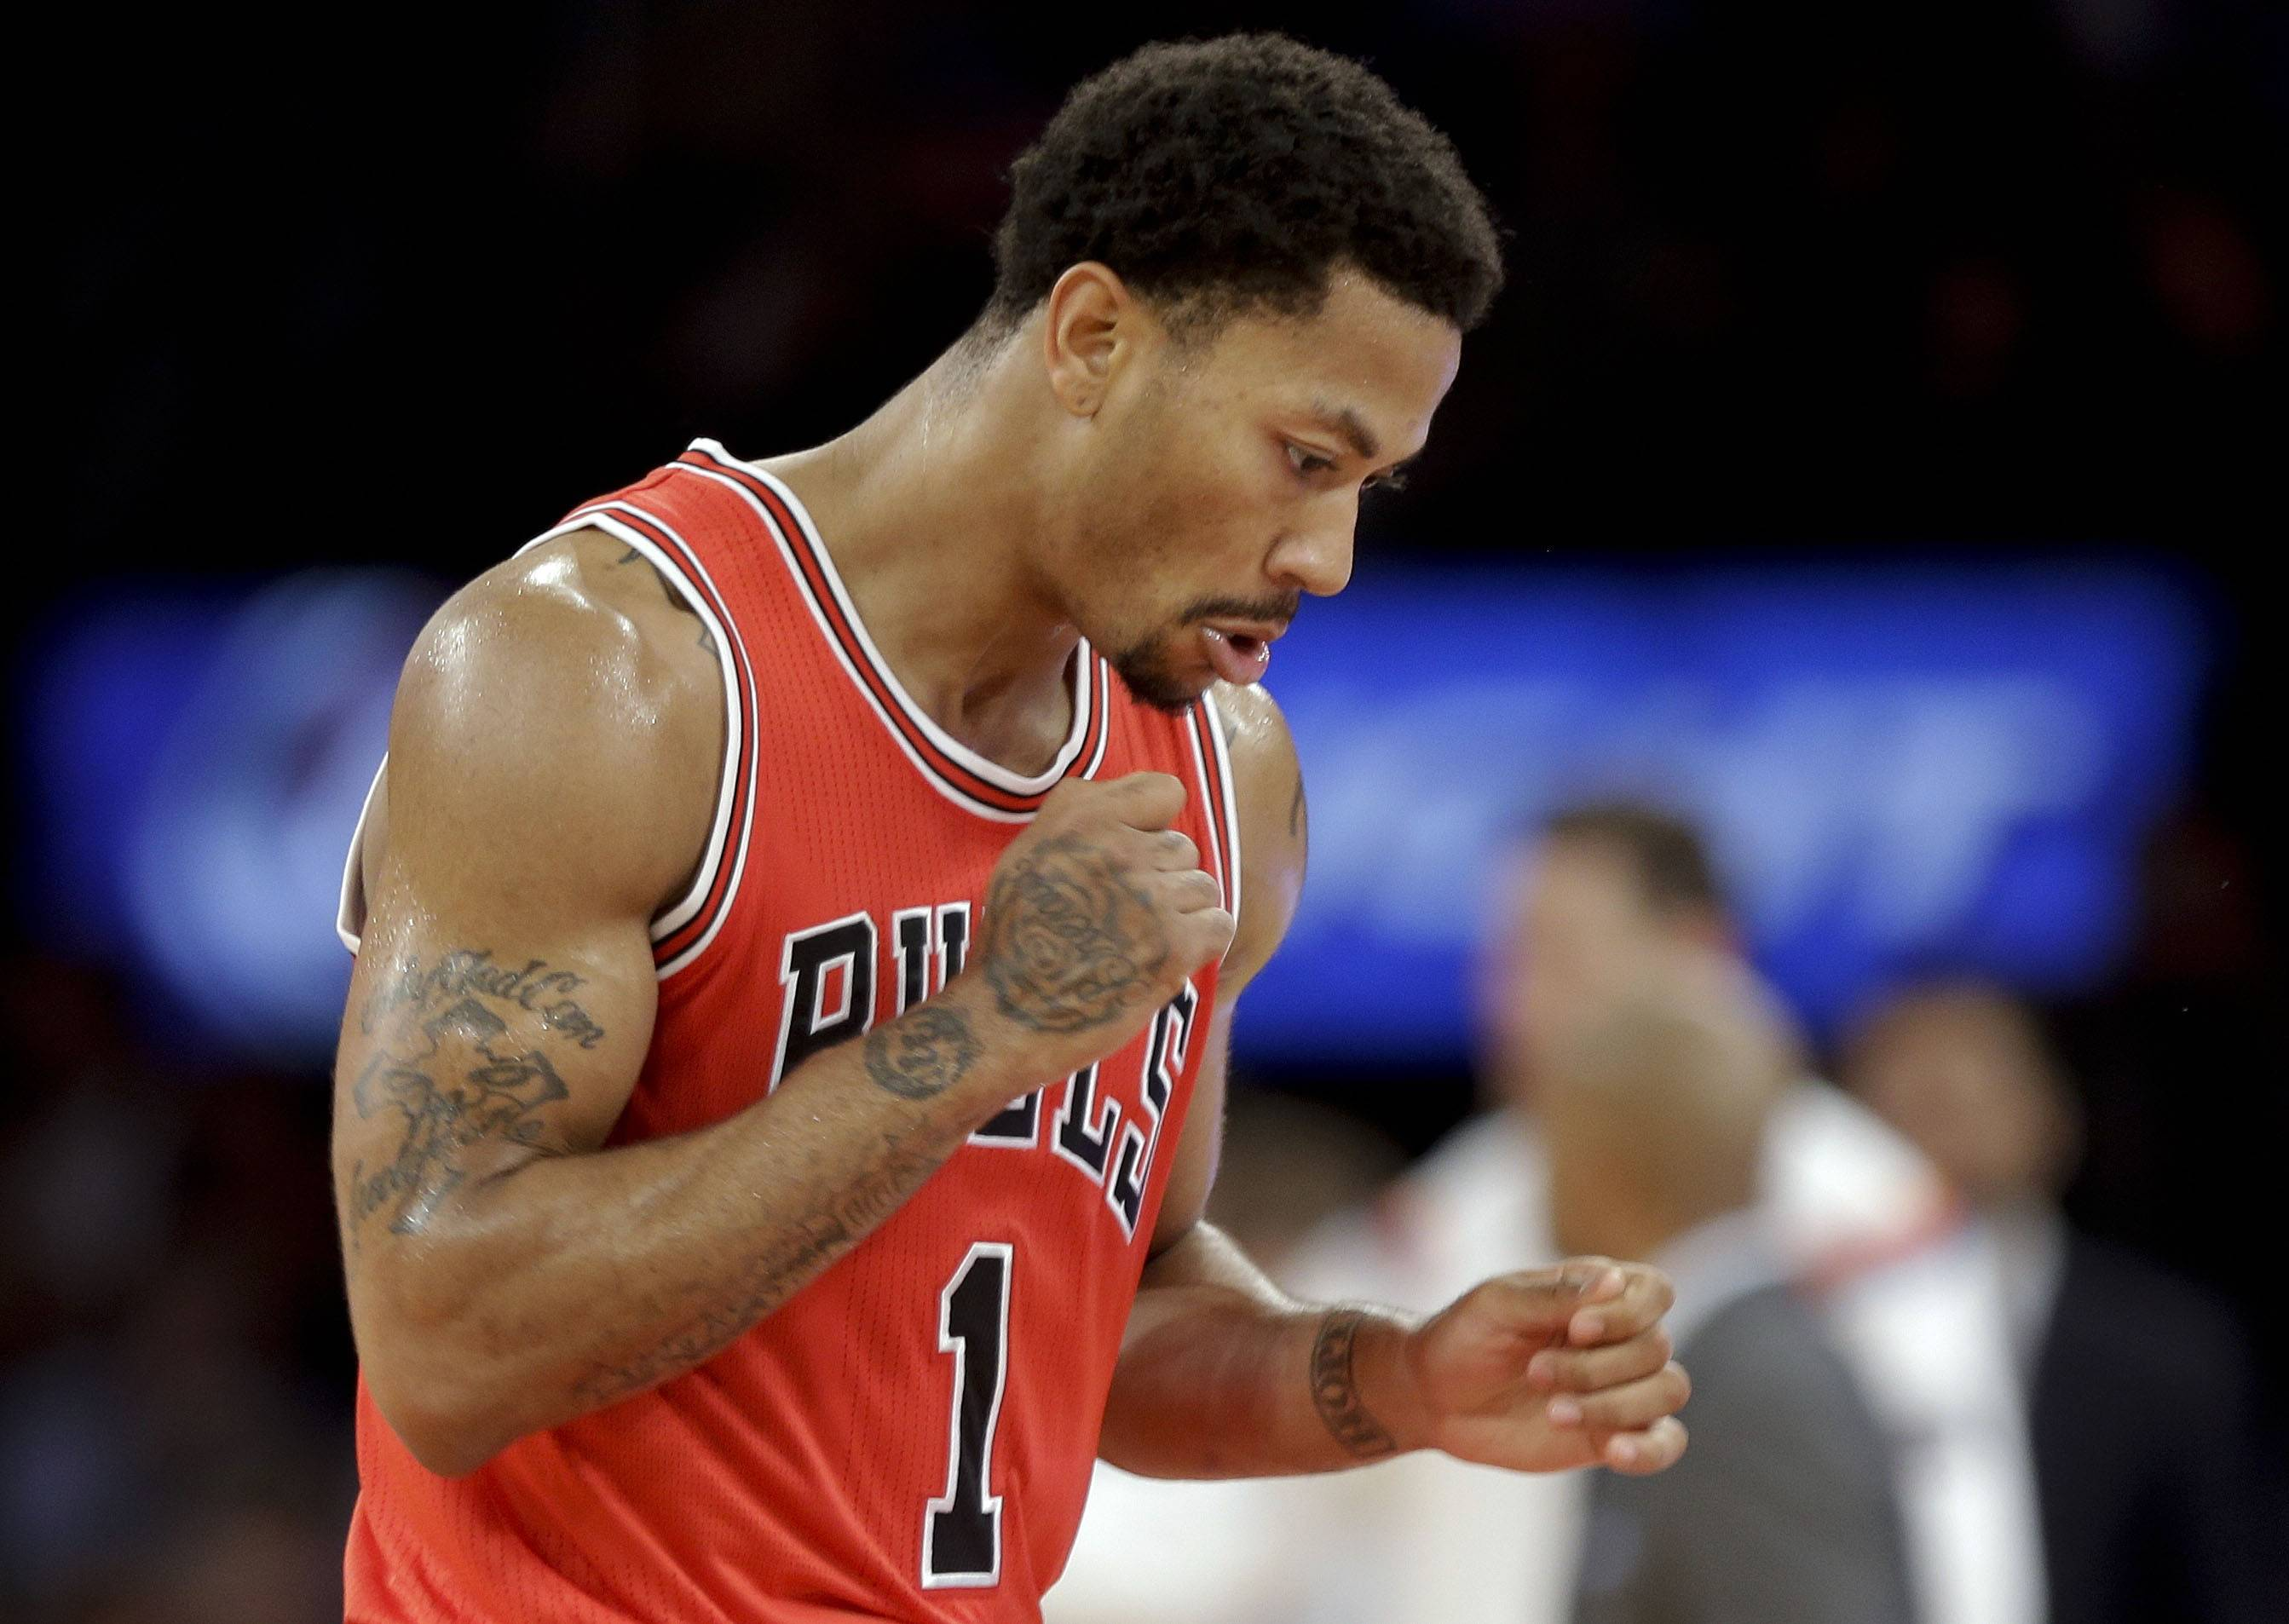 Chicago Bulls' Derrick Rose reacts to a play during the second half of Bulls 104-80 win over the Knicks Wednesday in New York.